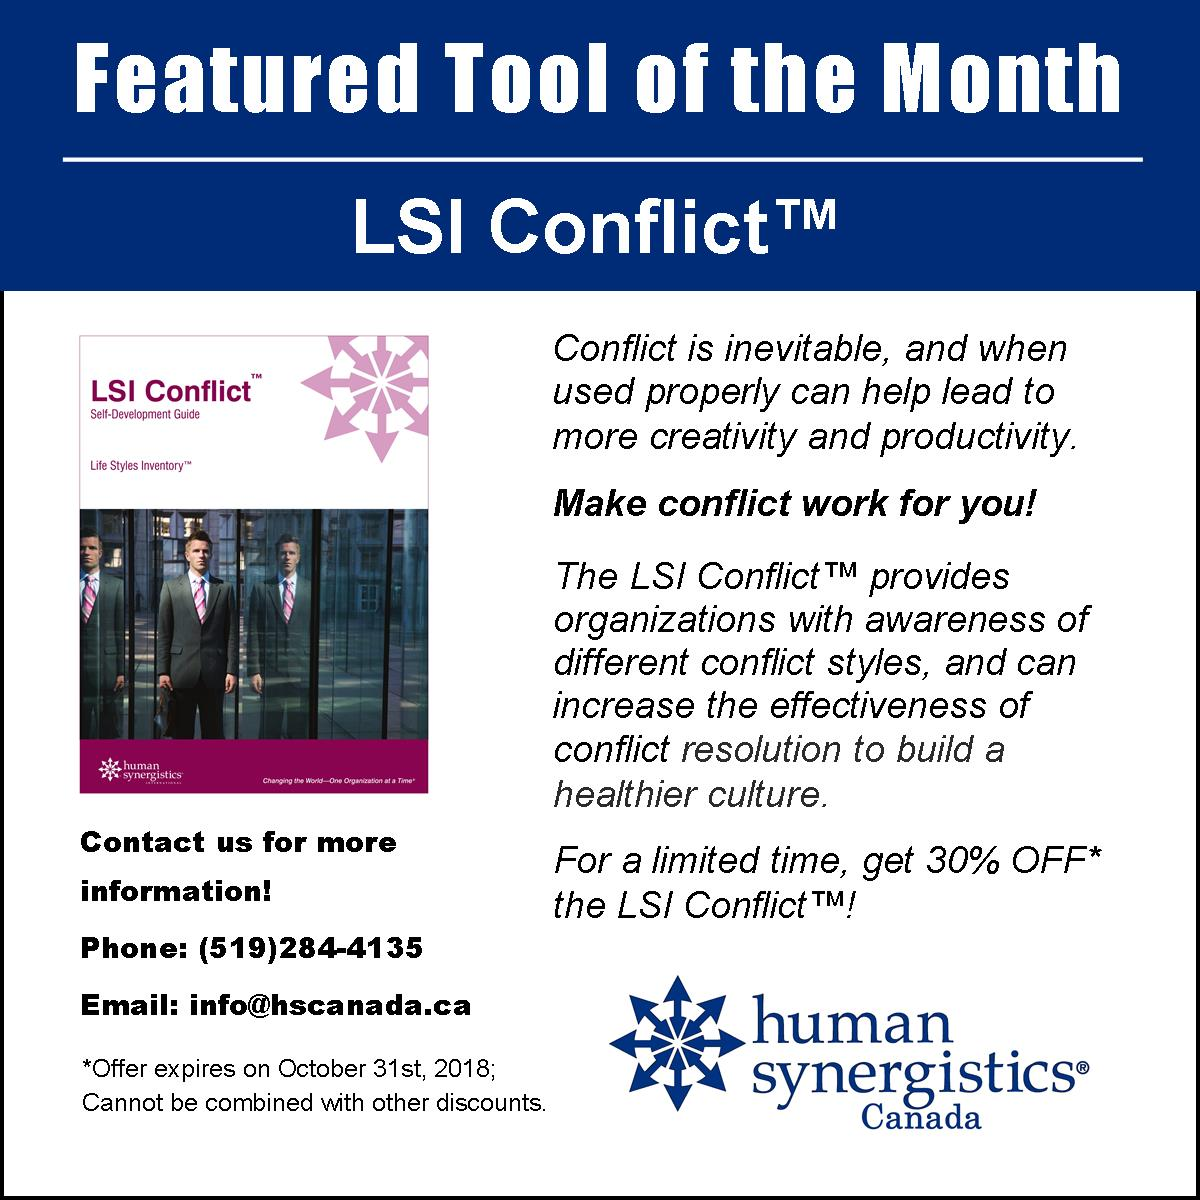 LSI Conflict October promo